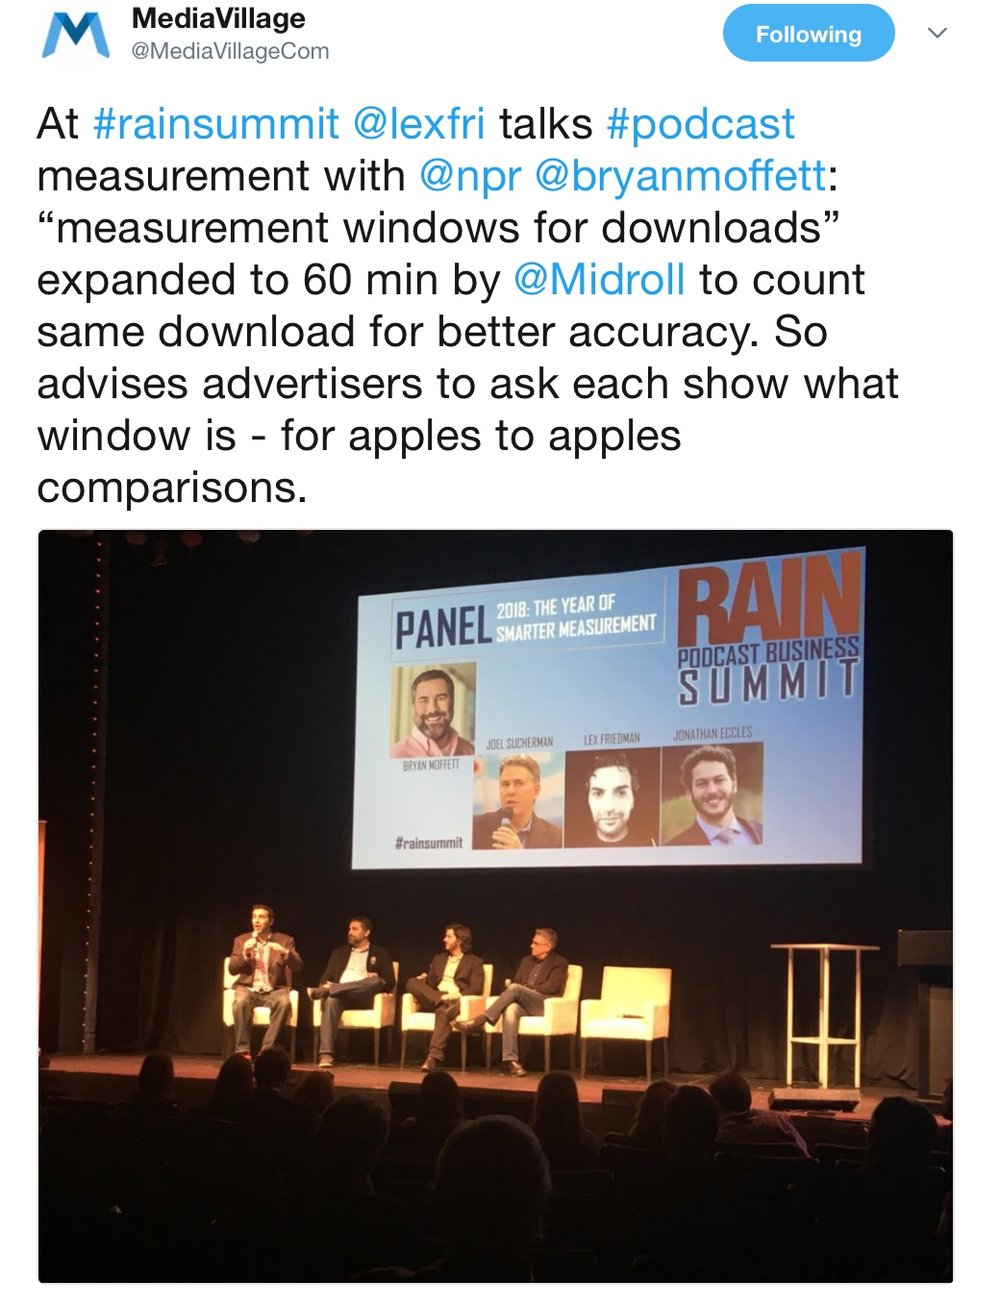 "MediaVillage_on_Twitter___At__rainsummit__lexfri_talks__podcast_measurement_with__npr__bryanmoffett__""measurement_windows_for_downloads""_expanded_to_60_min_by__Midroll_to_count_same_download_for_better_accuracy__So_advises_advertisers_to_as.jpg"